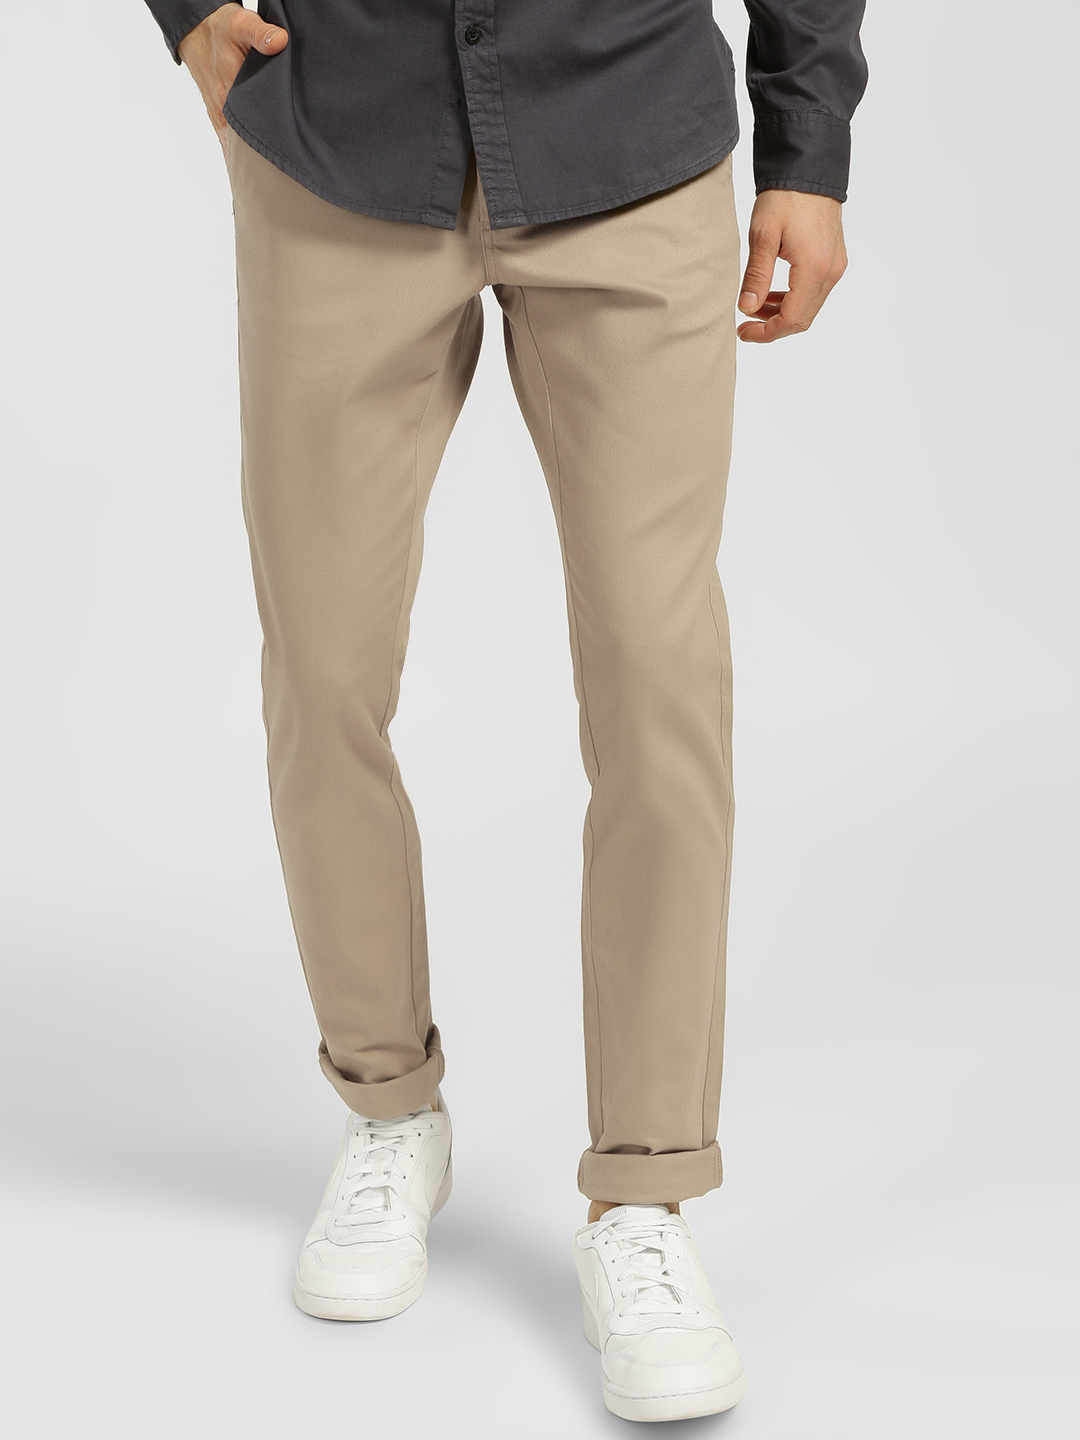 Indigo Nation Beige Basic Slim Fit Trousers 1